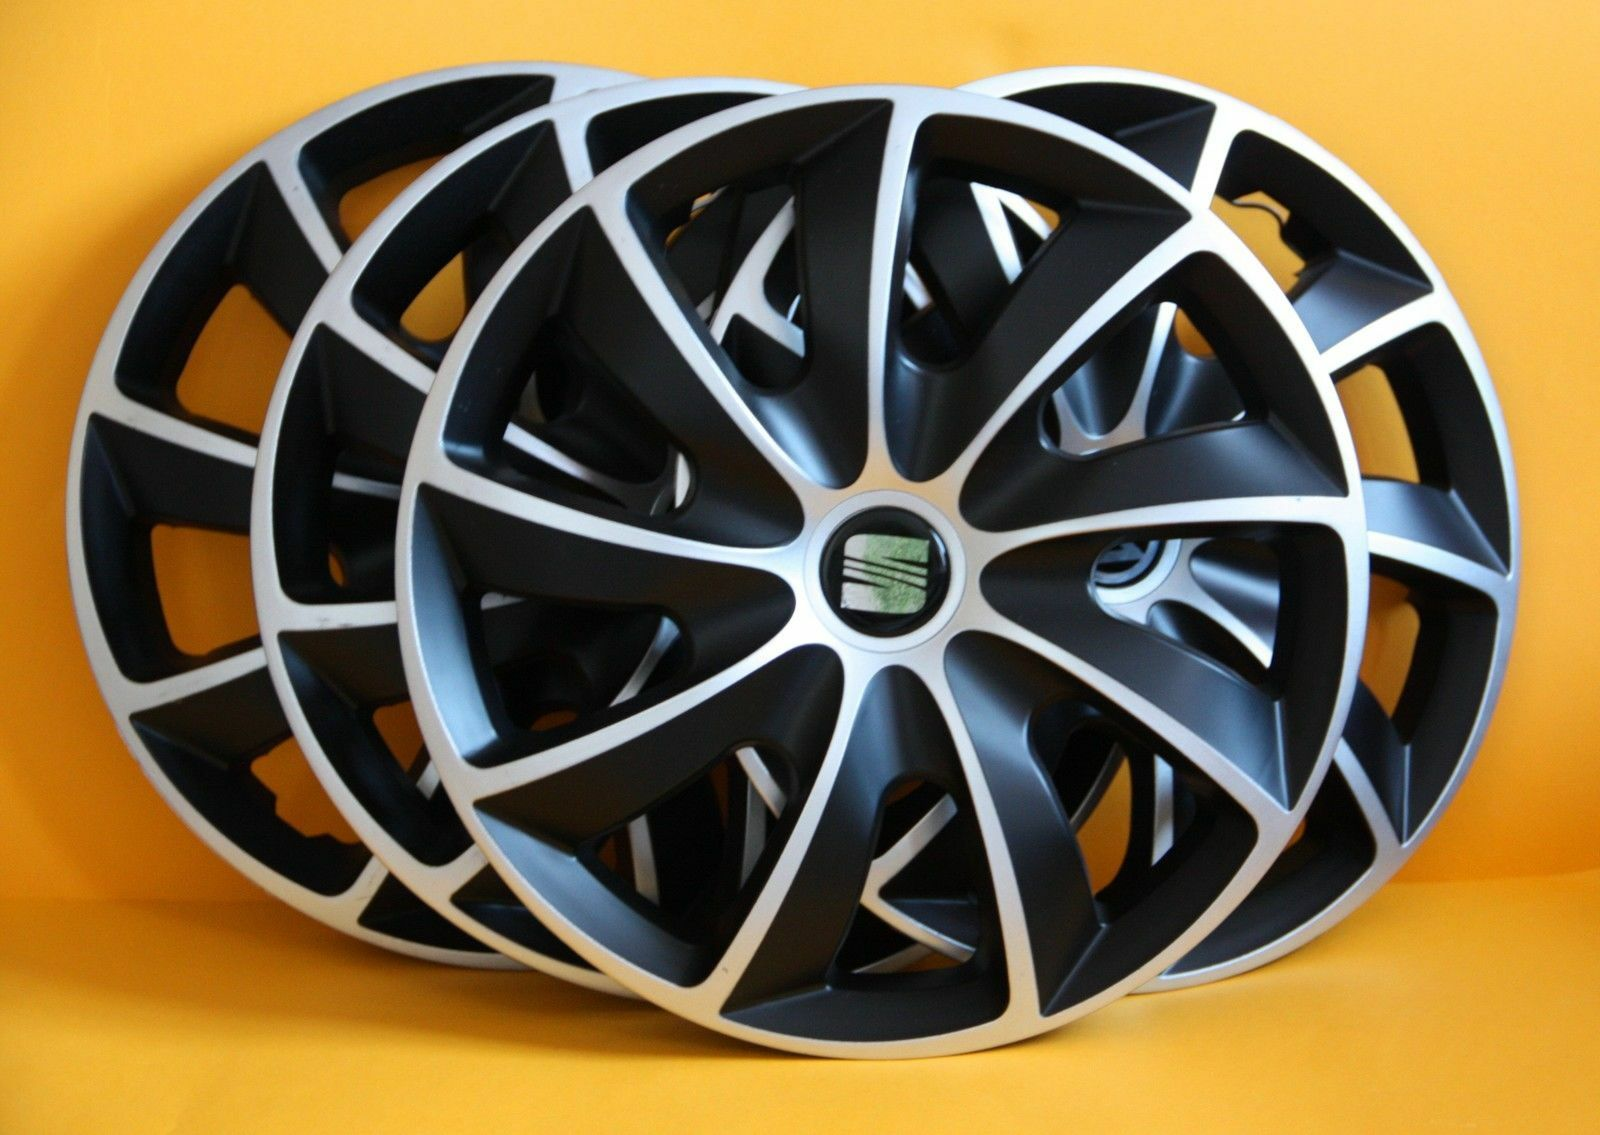 Seat IbizaToledoAltea XLLeon15 WHEEL TRIMS COVERS